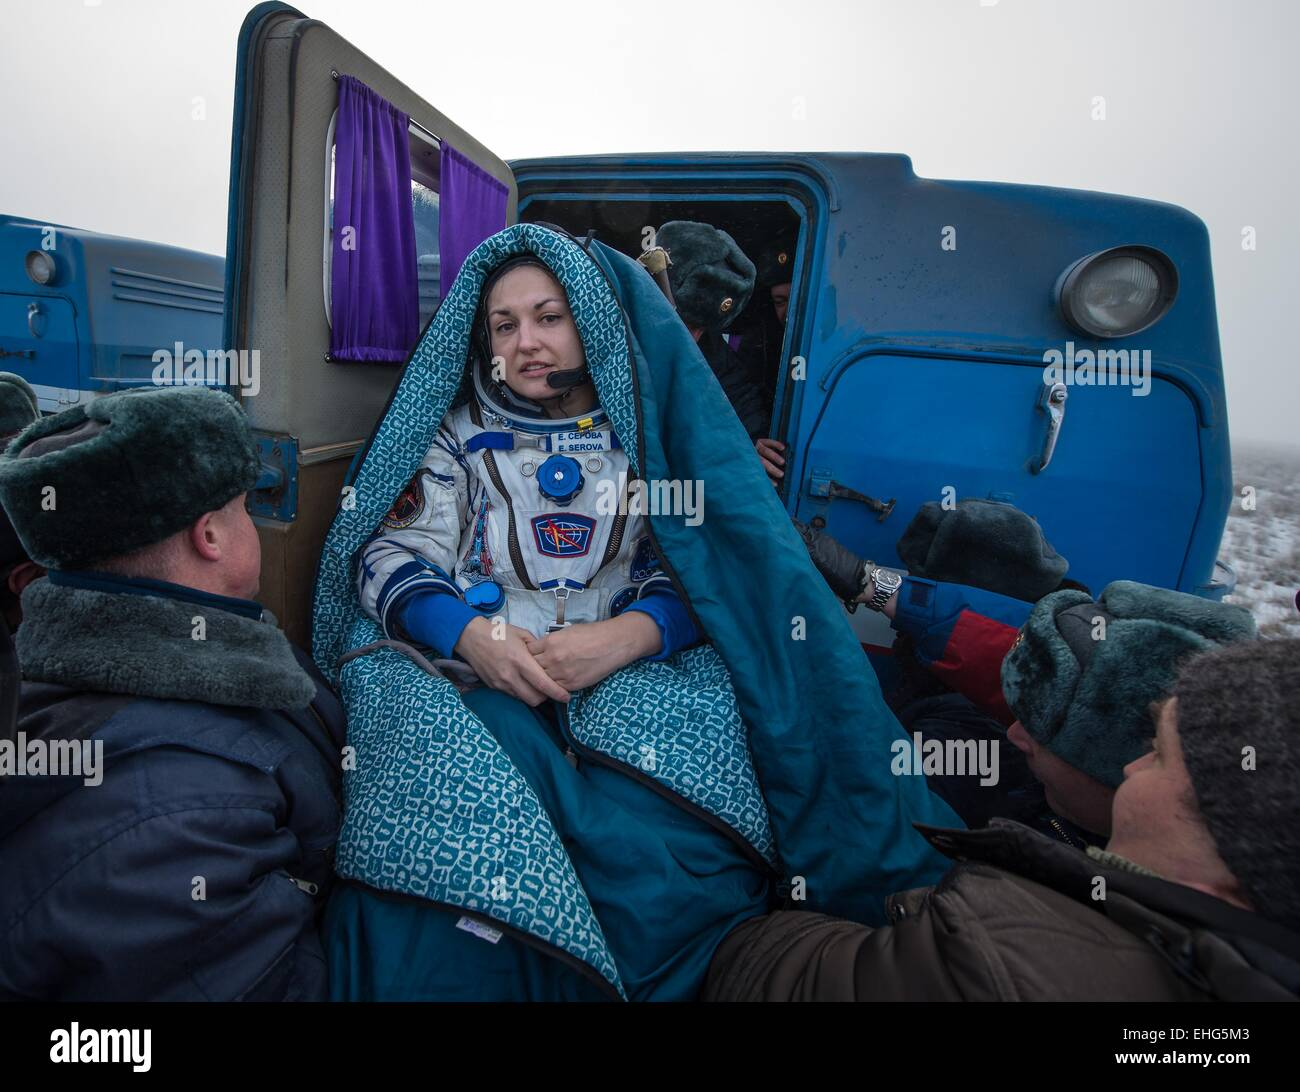 ISS Expedition 42 Cosmonaut Elena Serova wrapped in a blanket is carried to the recover vehicle outside the Soyuz - Stock Image